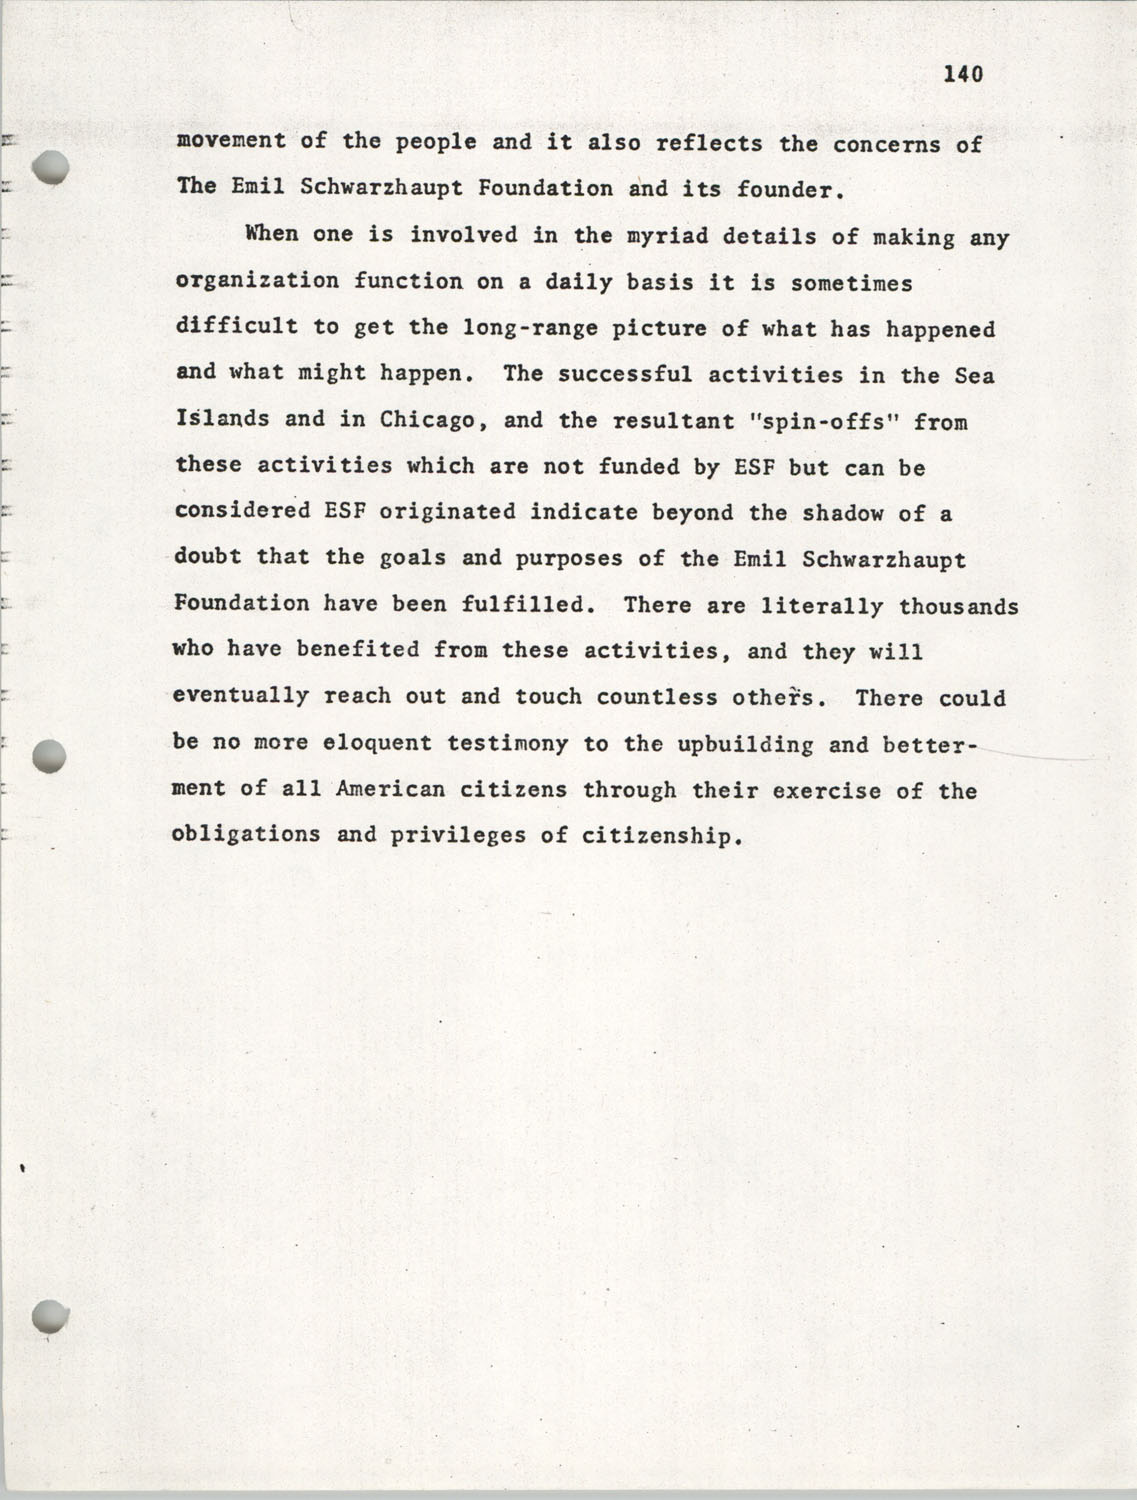 Citizen Participation. Democracy and Social Change, December 1, 1969, Page 140